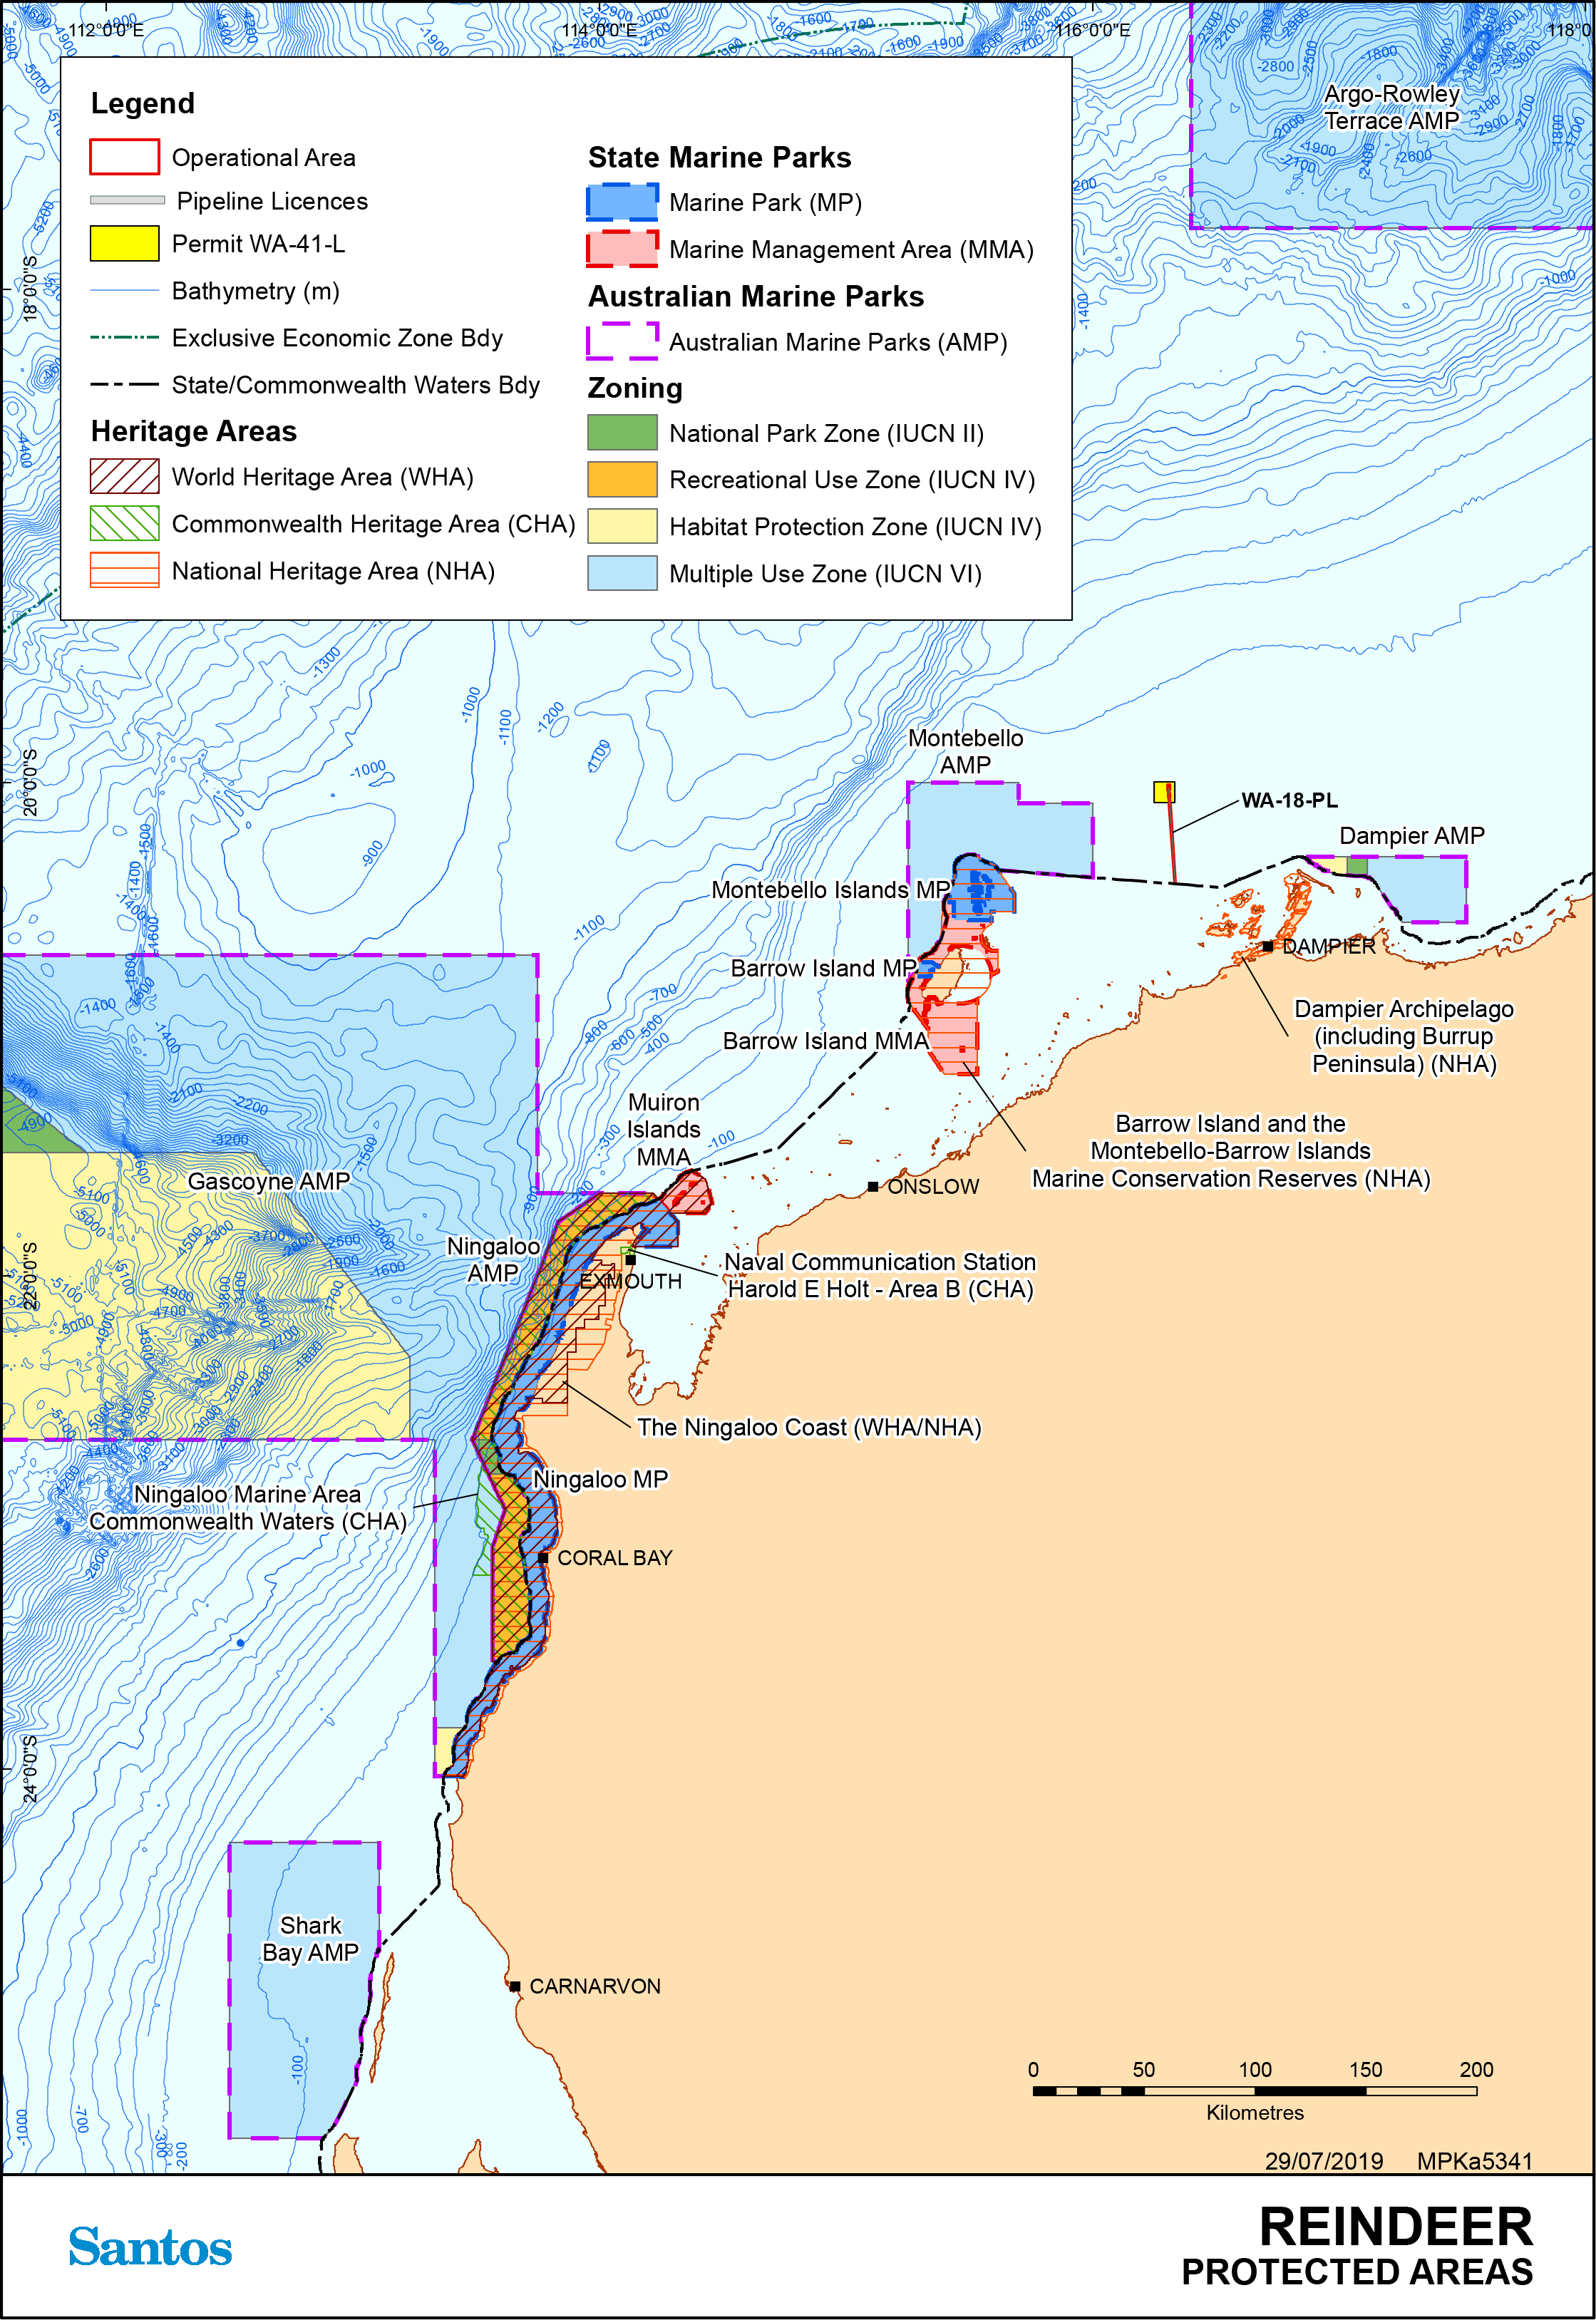 Location map - Activity: Reindeer Wellhead Platform and Offshore Gas Supply Pipeline Operations (refer to description)